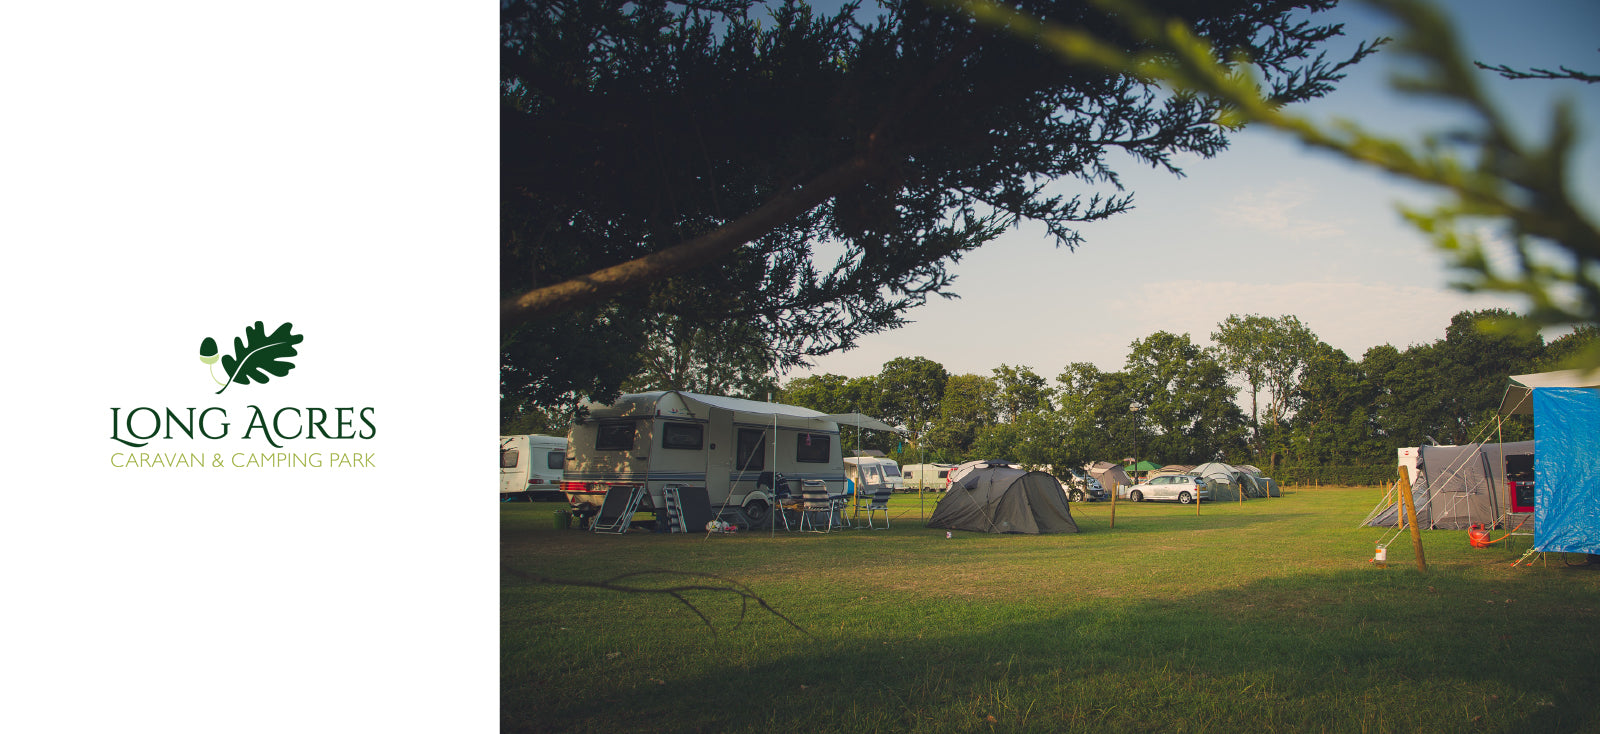 long acre camping site in surrey